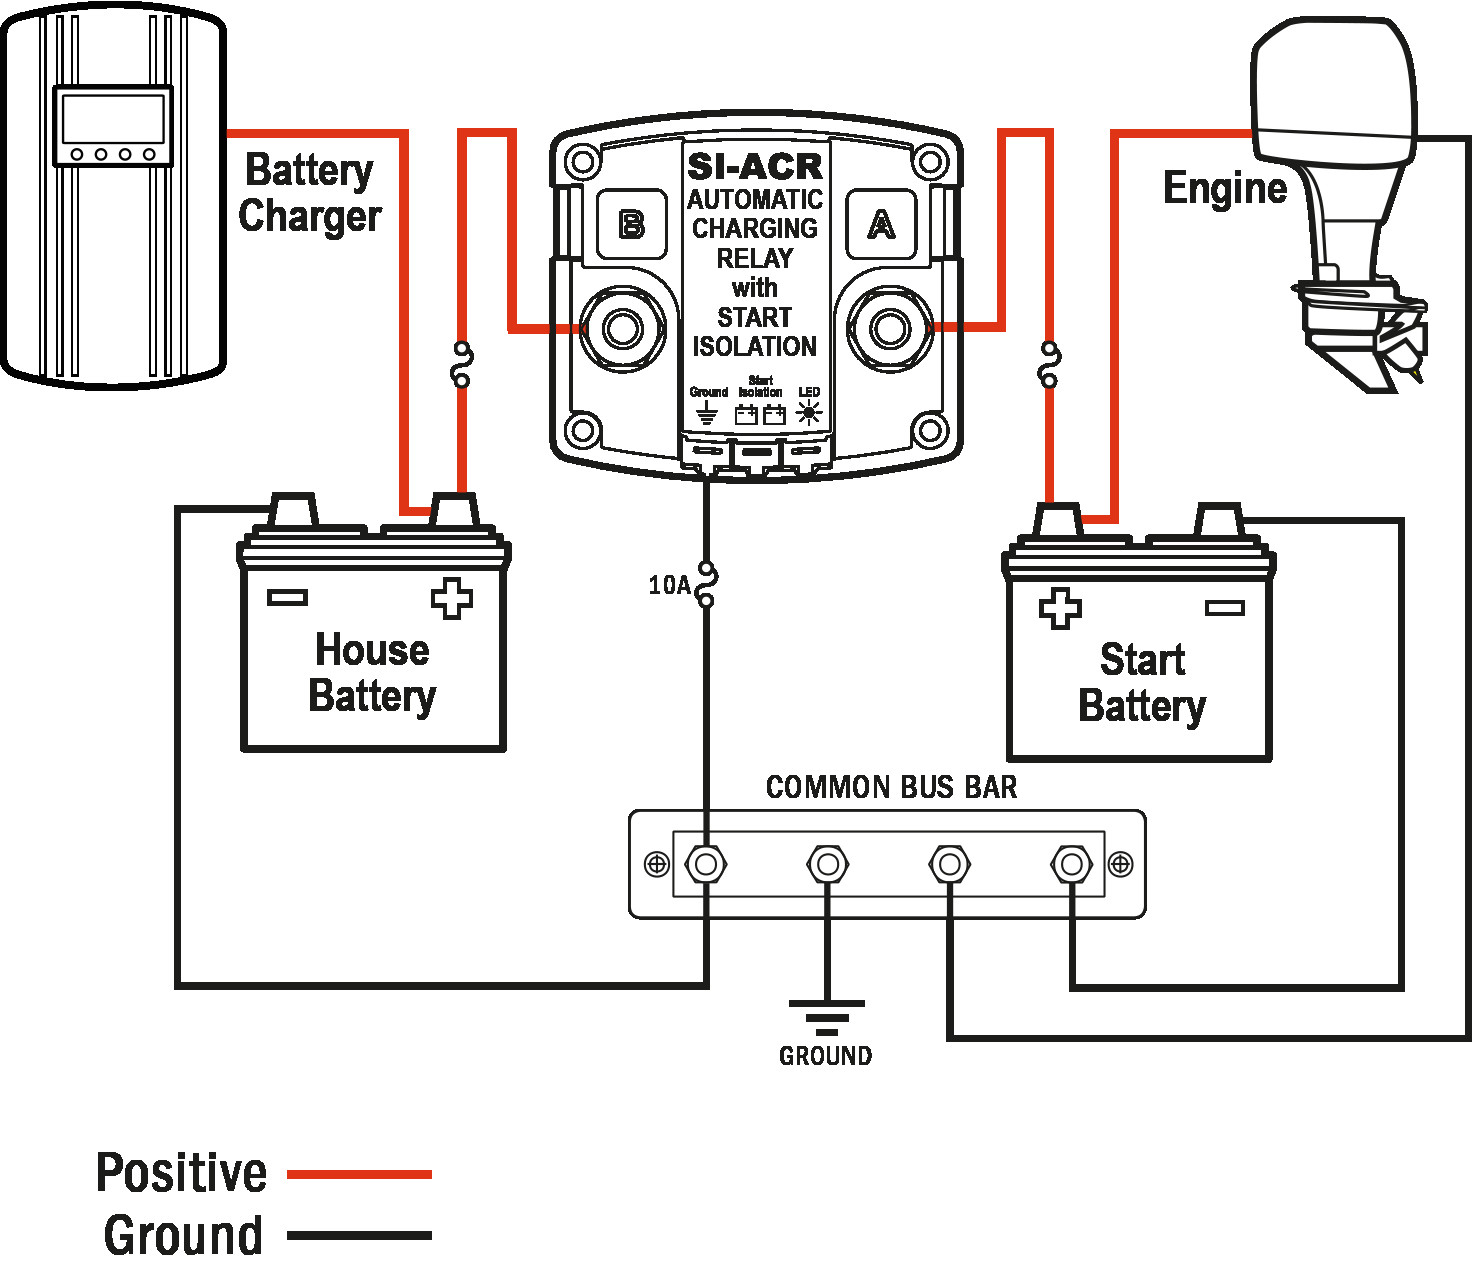 perko marine battery switch wiring diagram Download-Perko Dual Battery Switch Wiring Diagram Free Inside And With 20-e